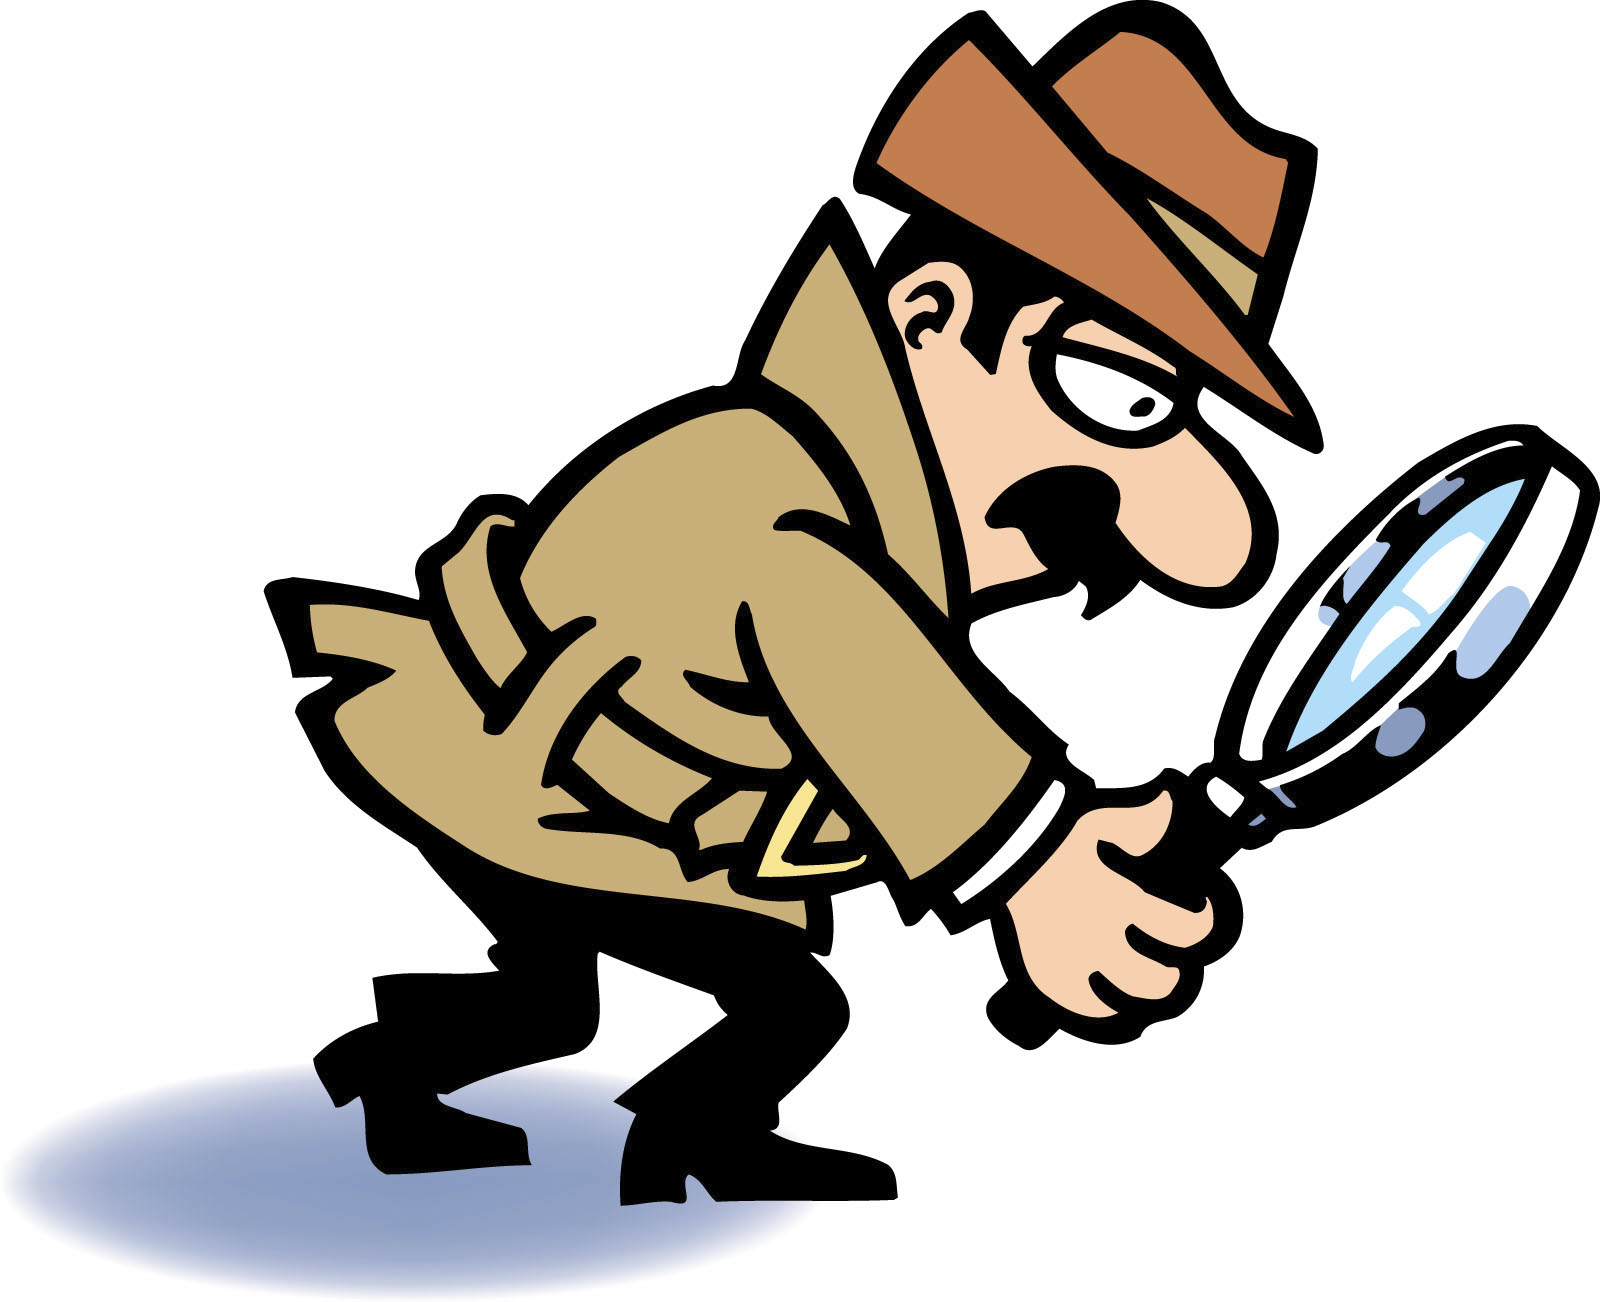 Hd brb free unlimited. Detective clipart transparent background